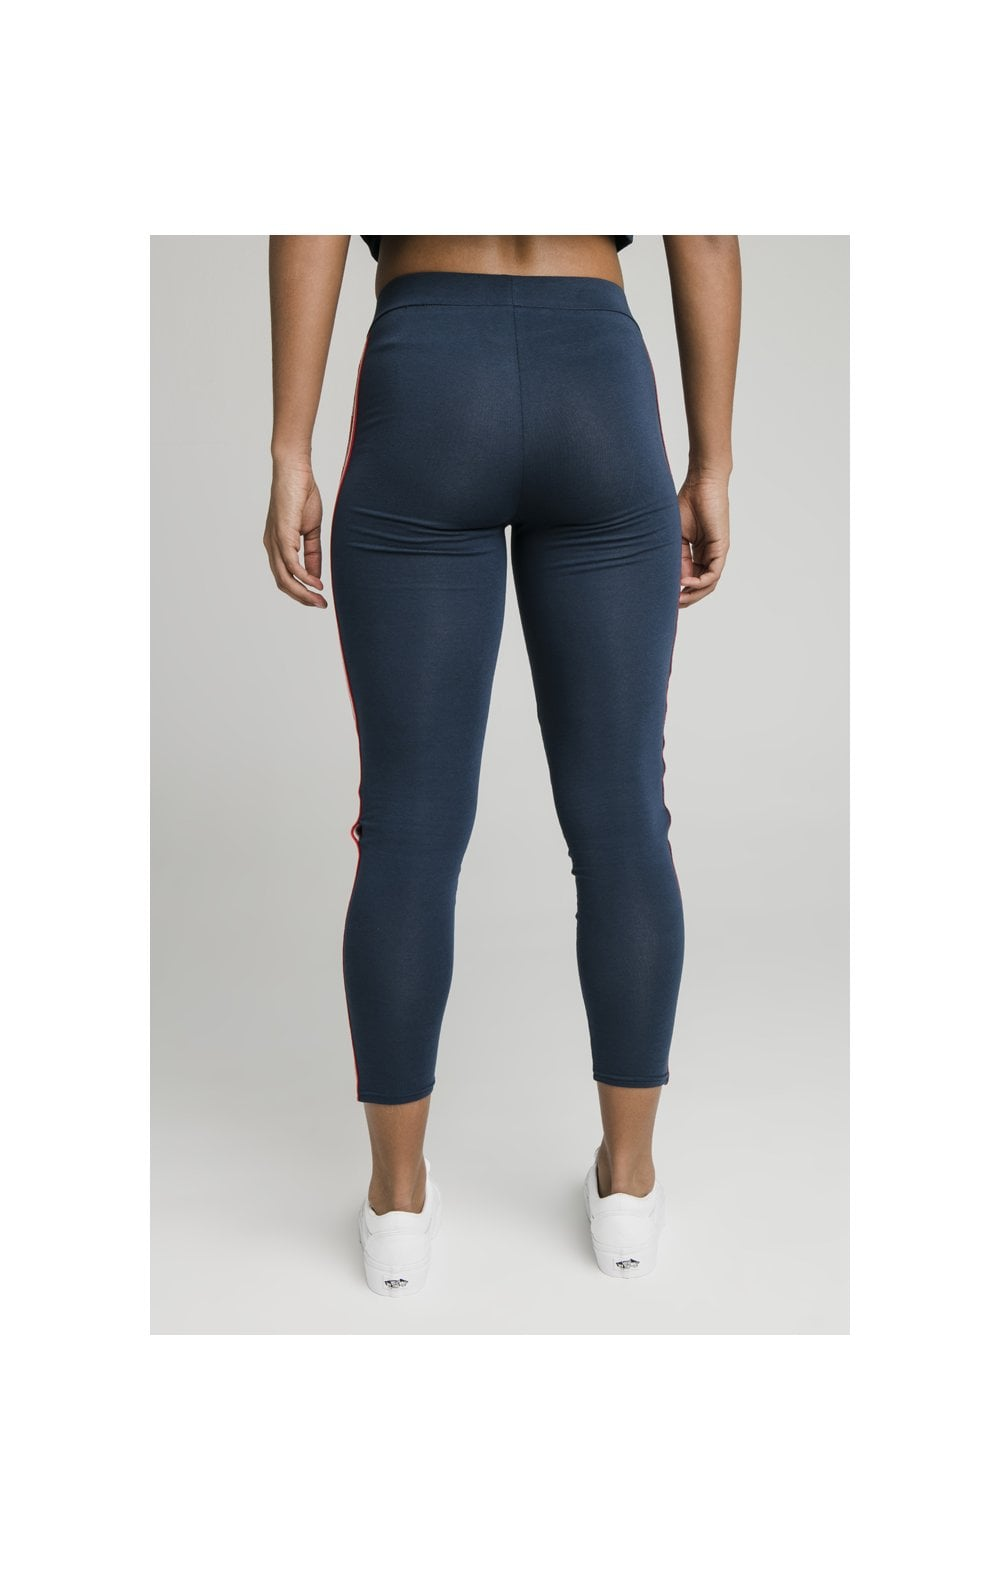 SikSilk Classic Tape Leggings - Navy (4)